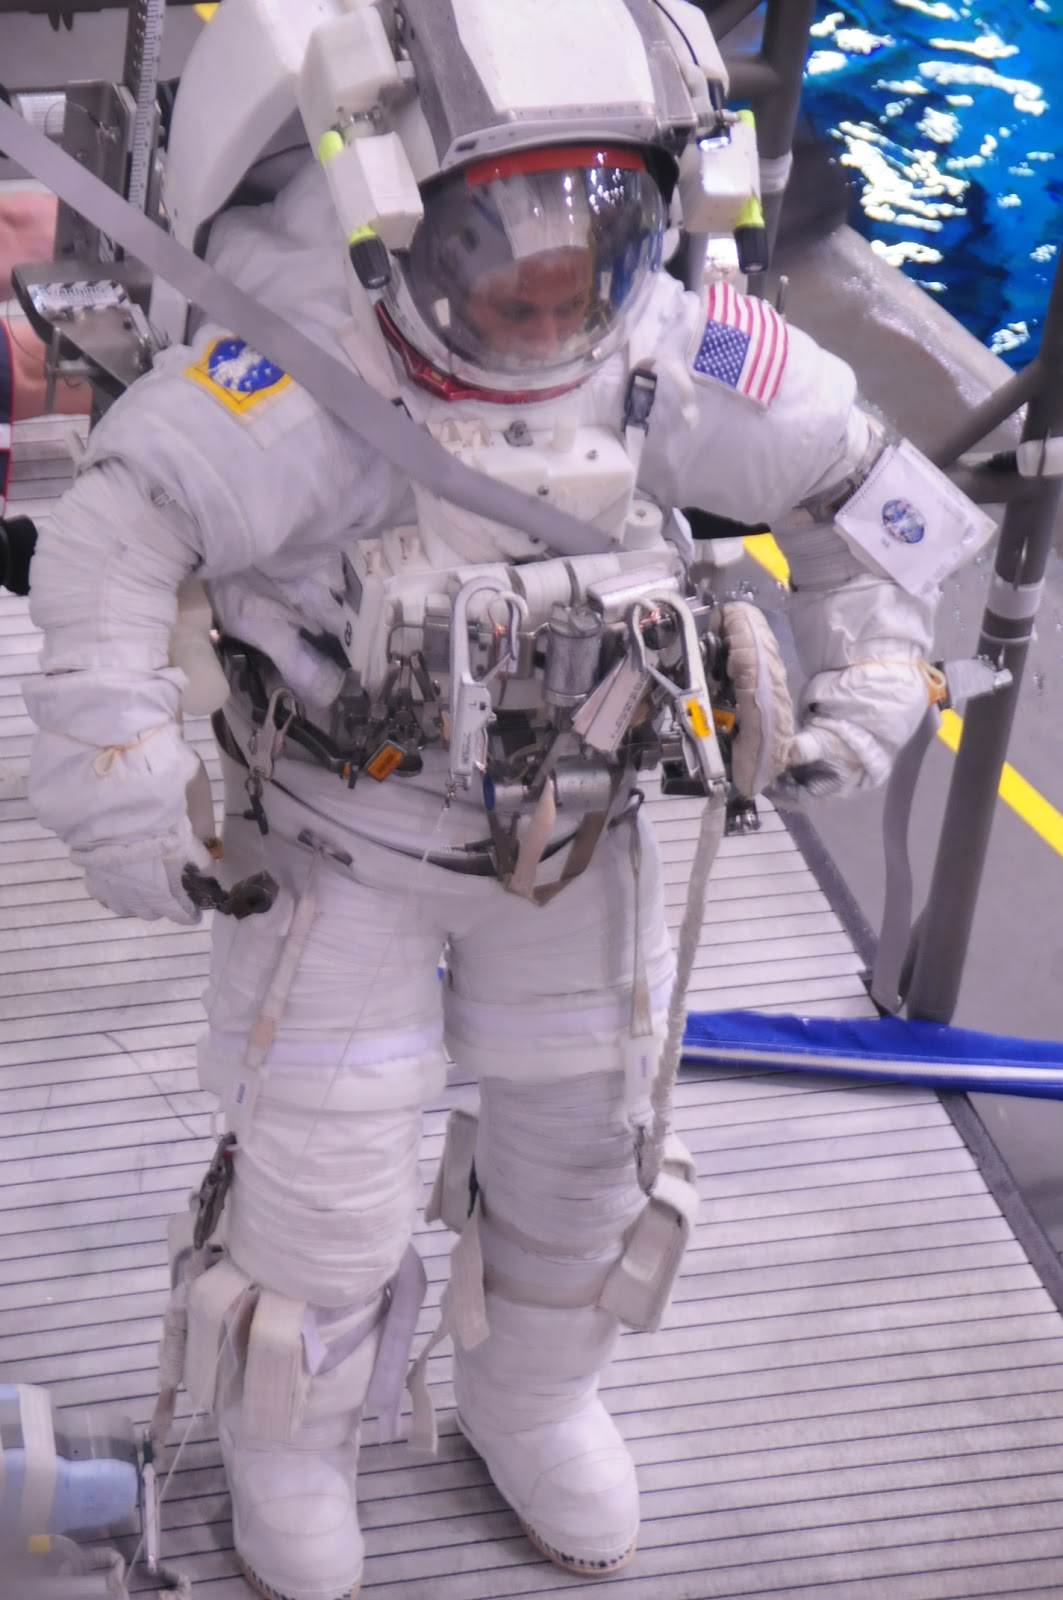 Eastern Eagles: Day 3 - Tour of Johnson Space Center....A ...